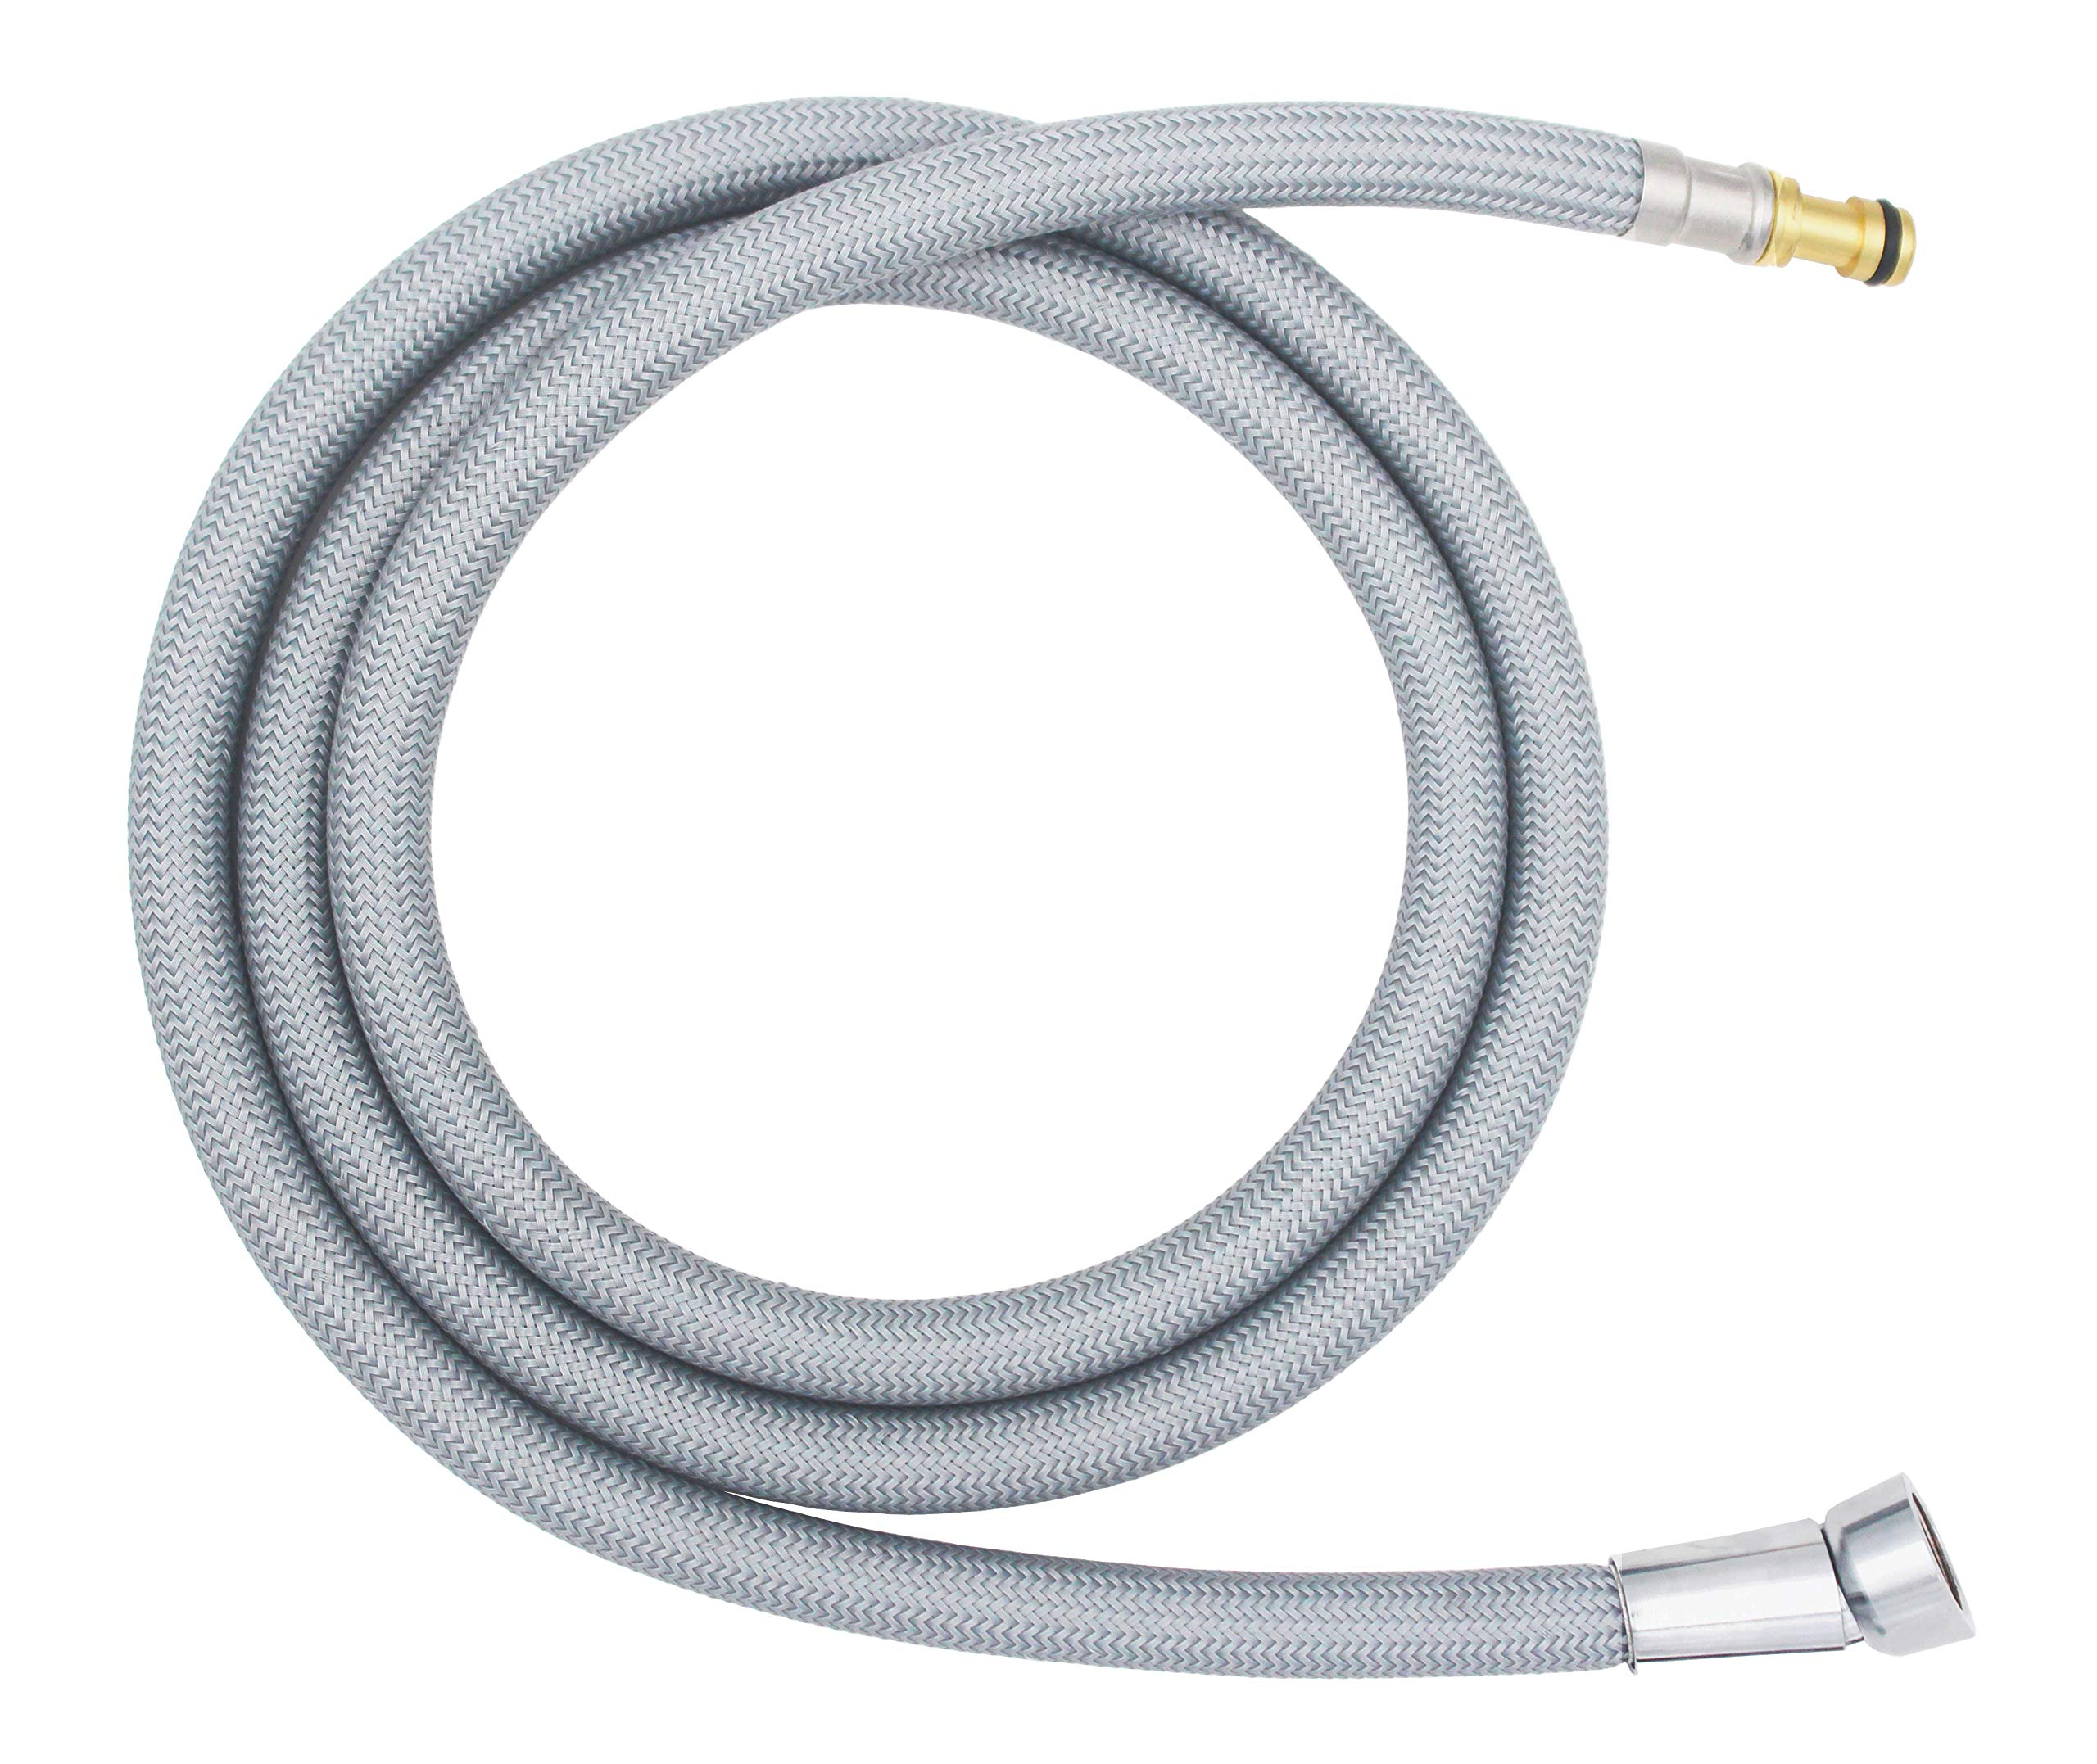 Replacement Hose Kit model number #150259 for Moen compatible with its any Pulldown Kitchen Faucets Sink Plumb Bathroom Fixture - with the hose part number #187108.